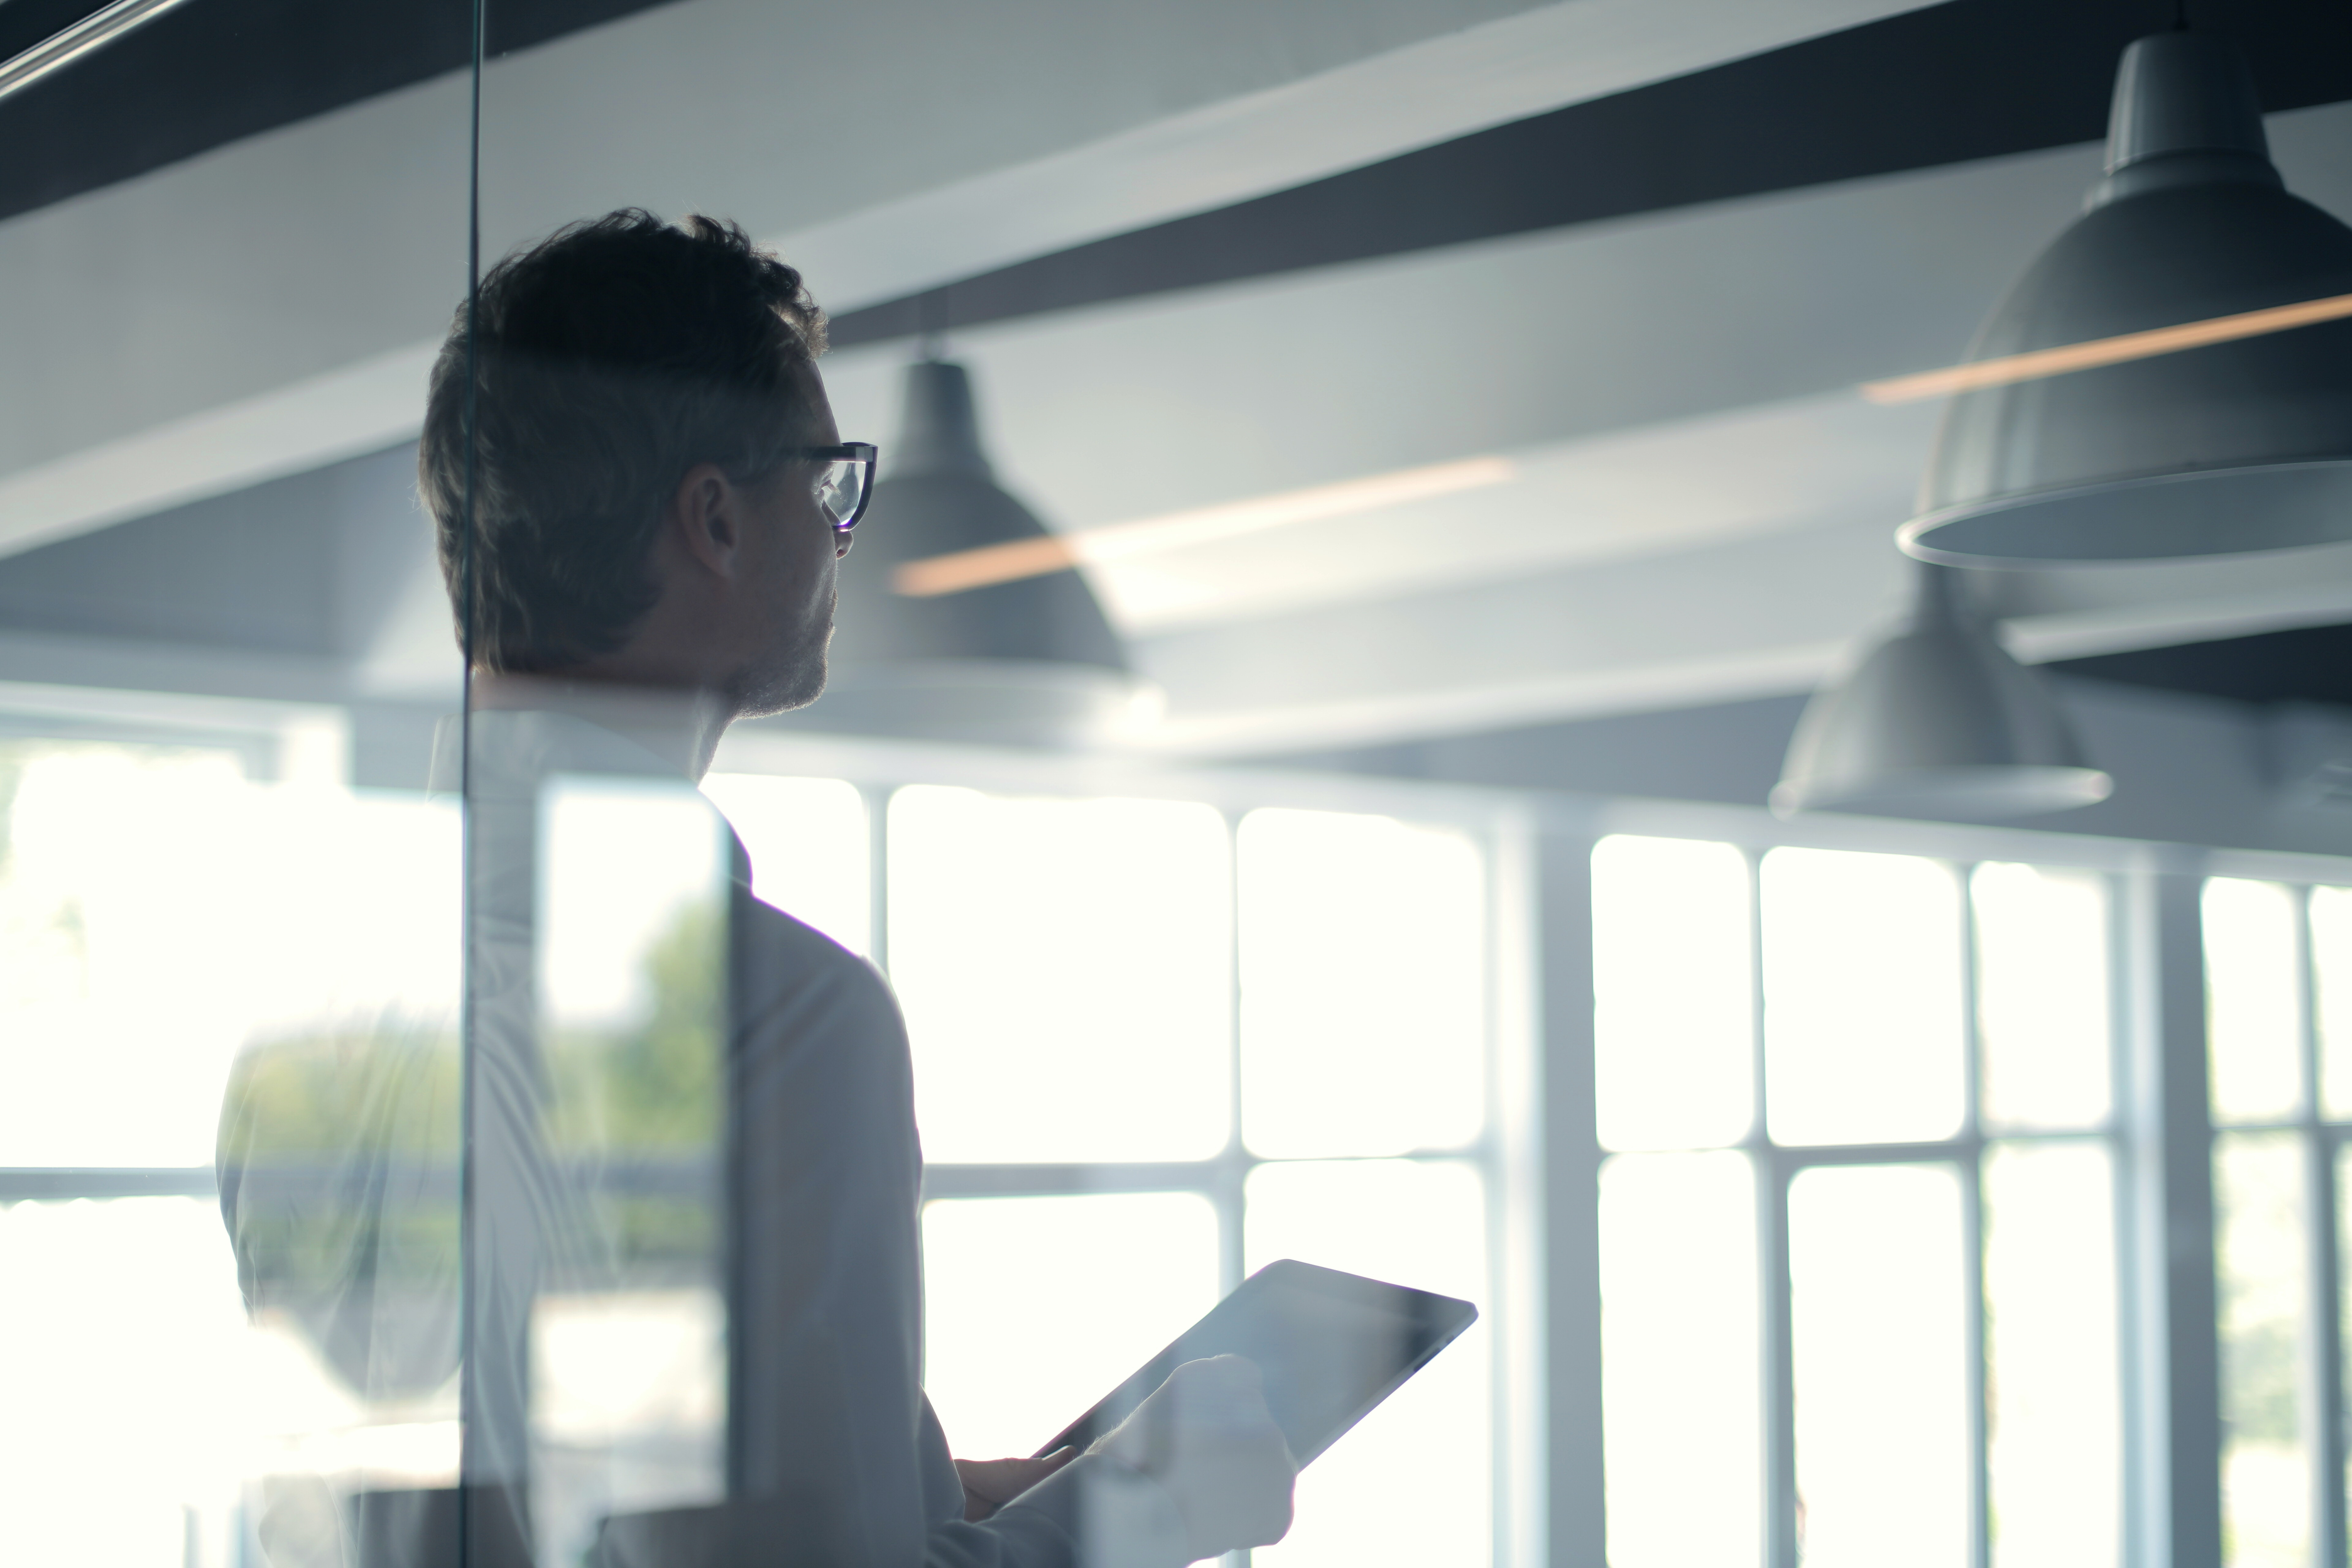 Man behind glass in office conference room